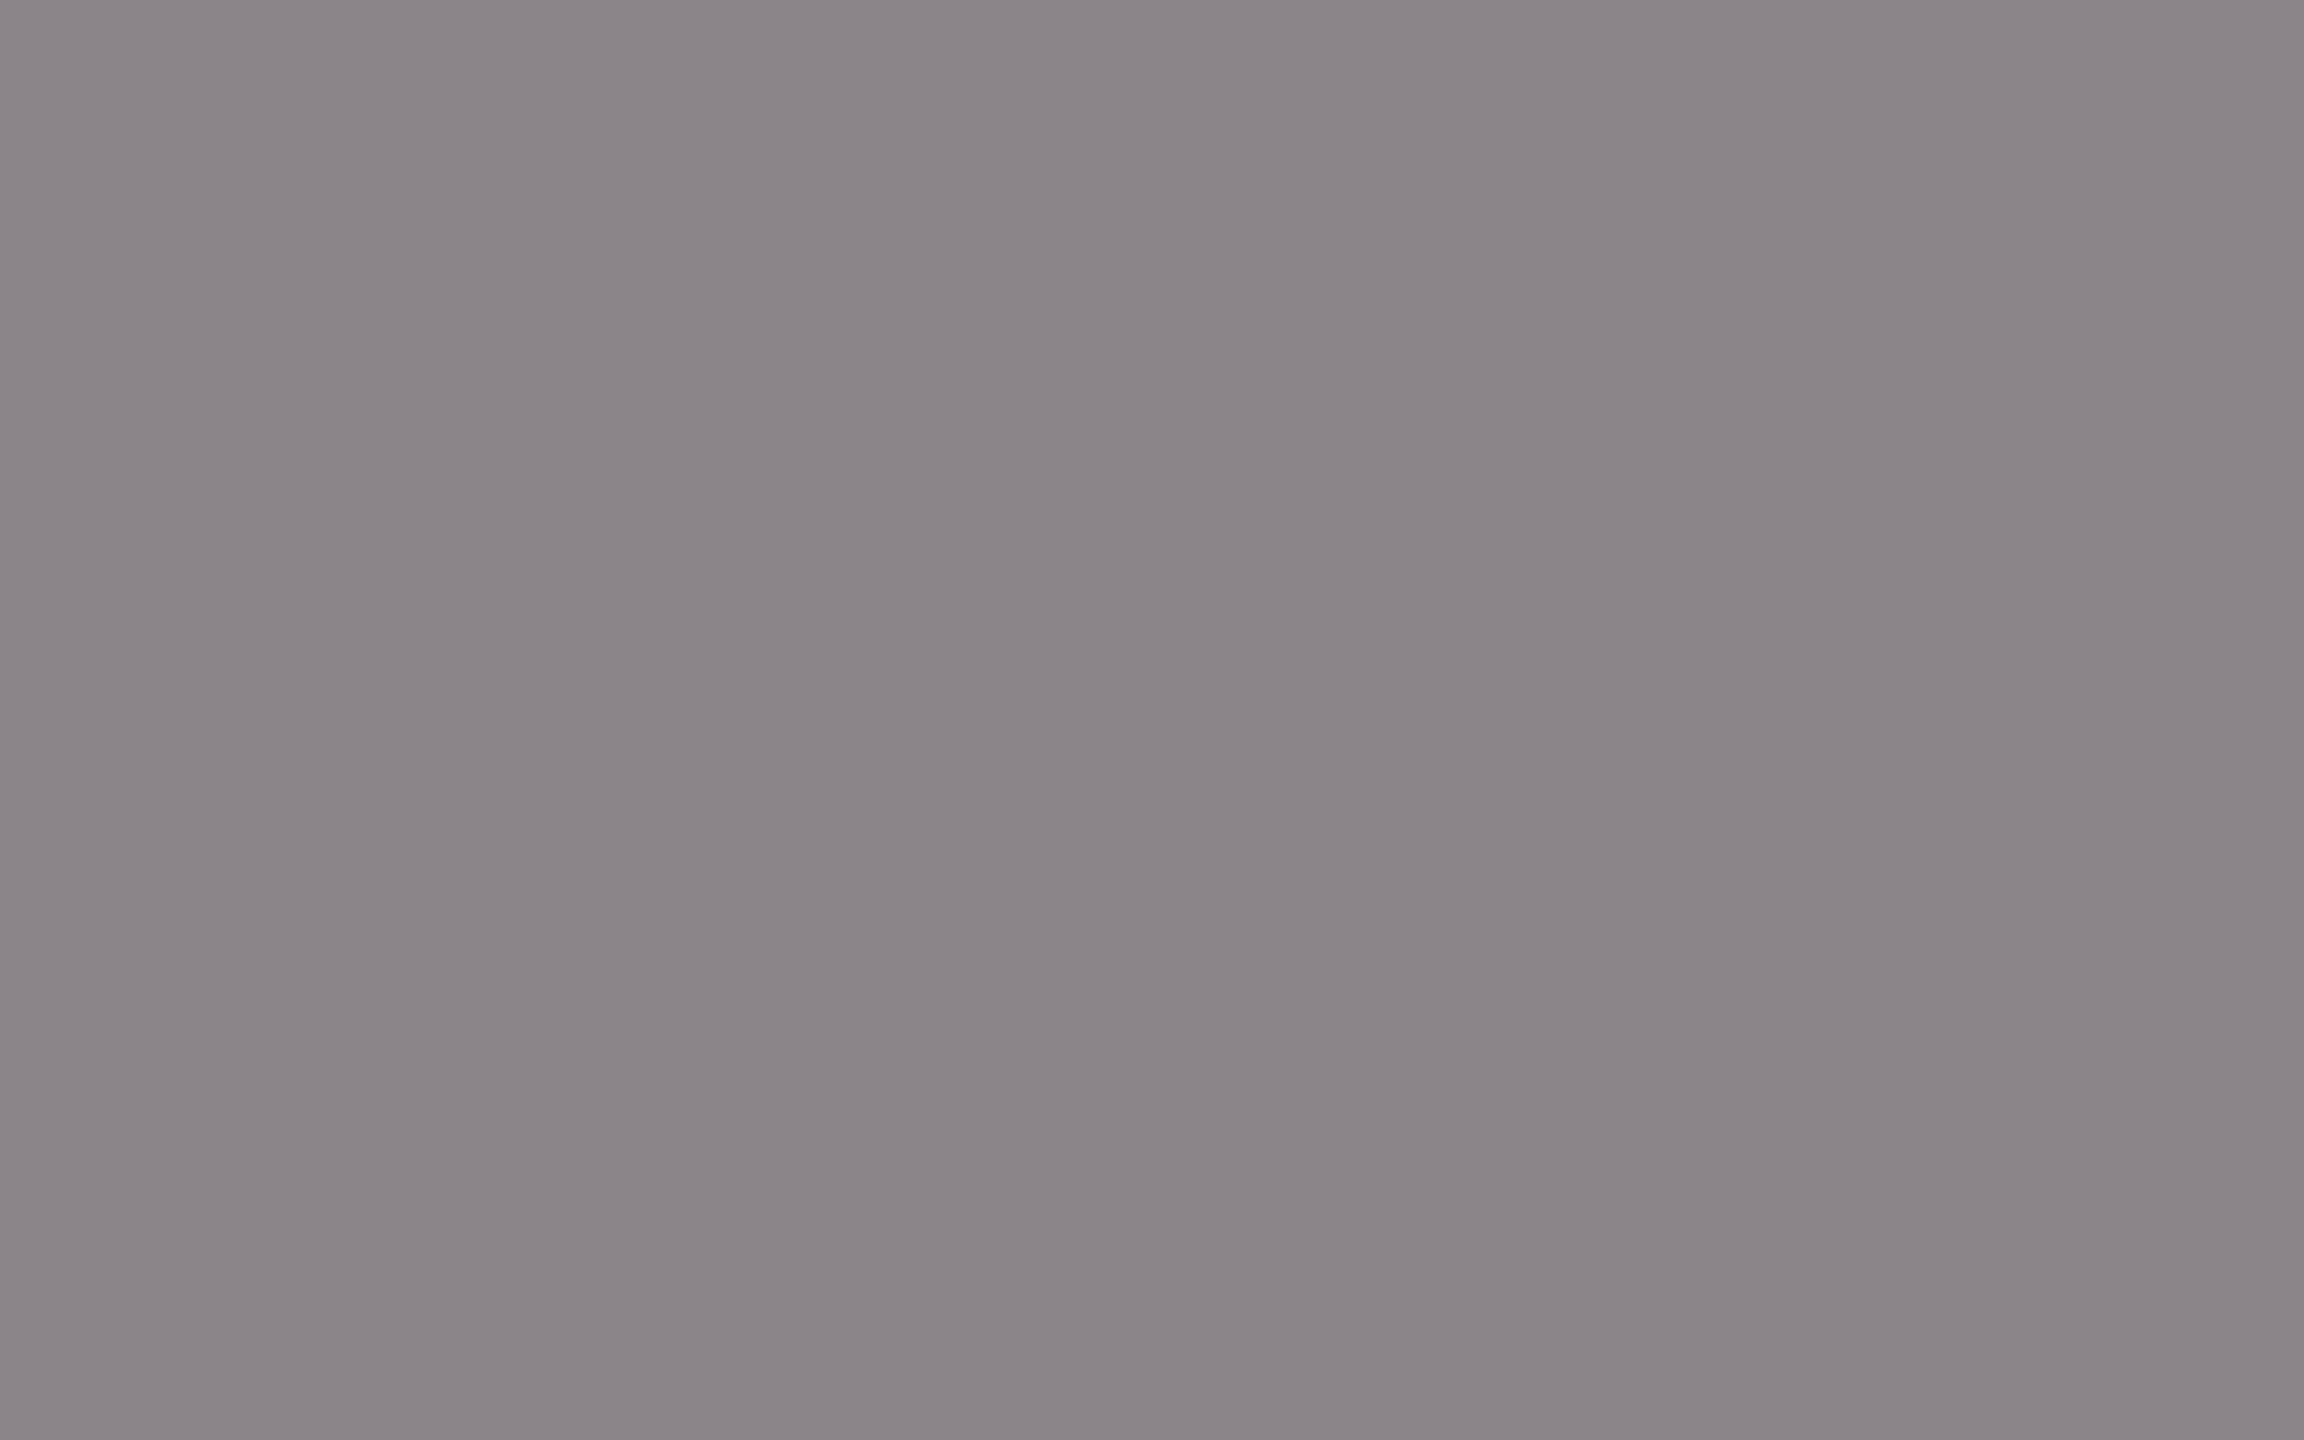 2304x1440 Taupe Gray Solid Color Background